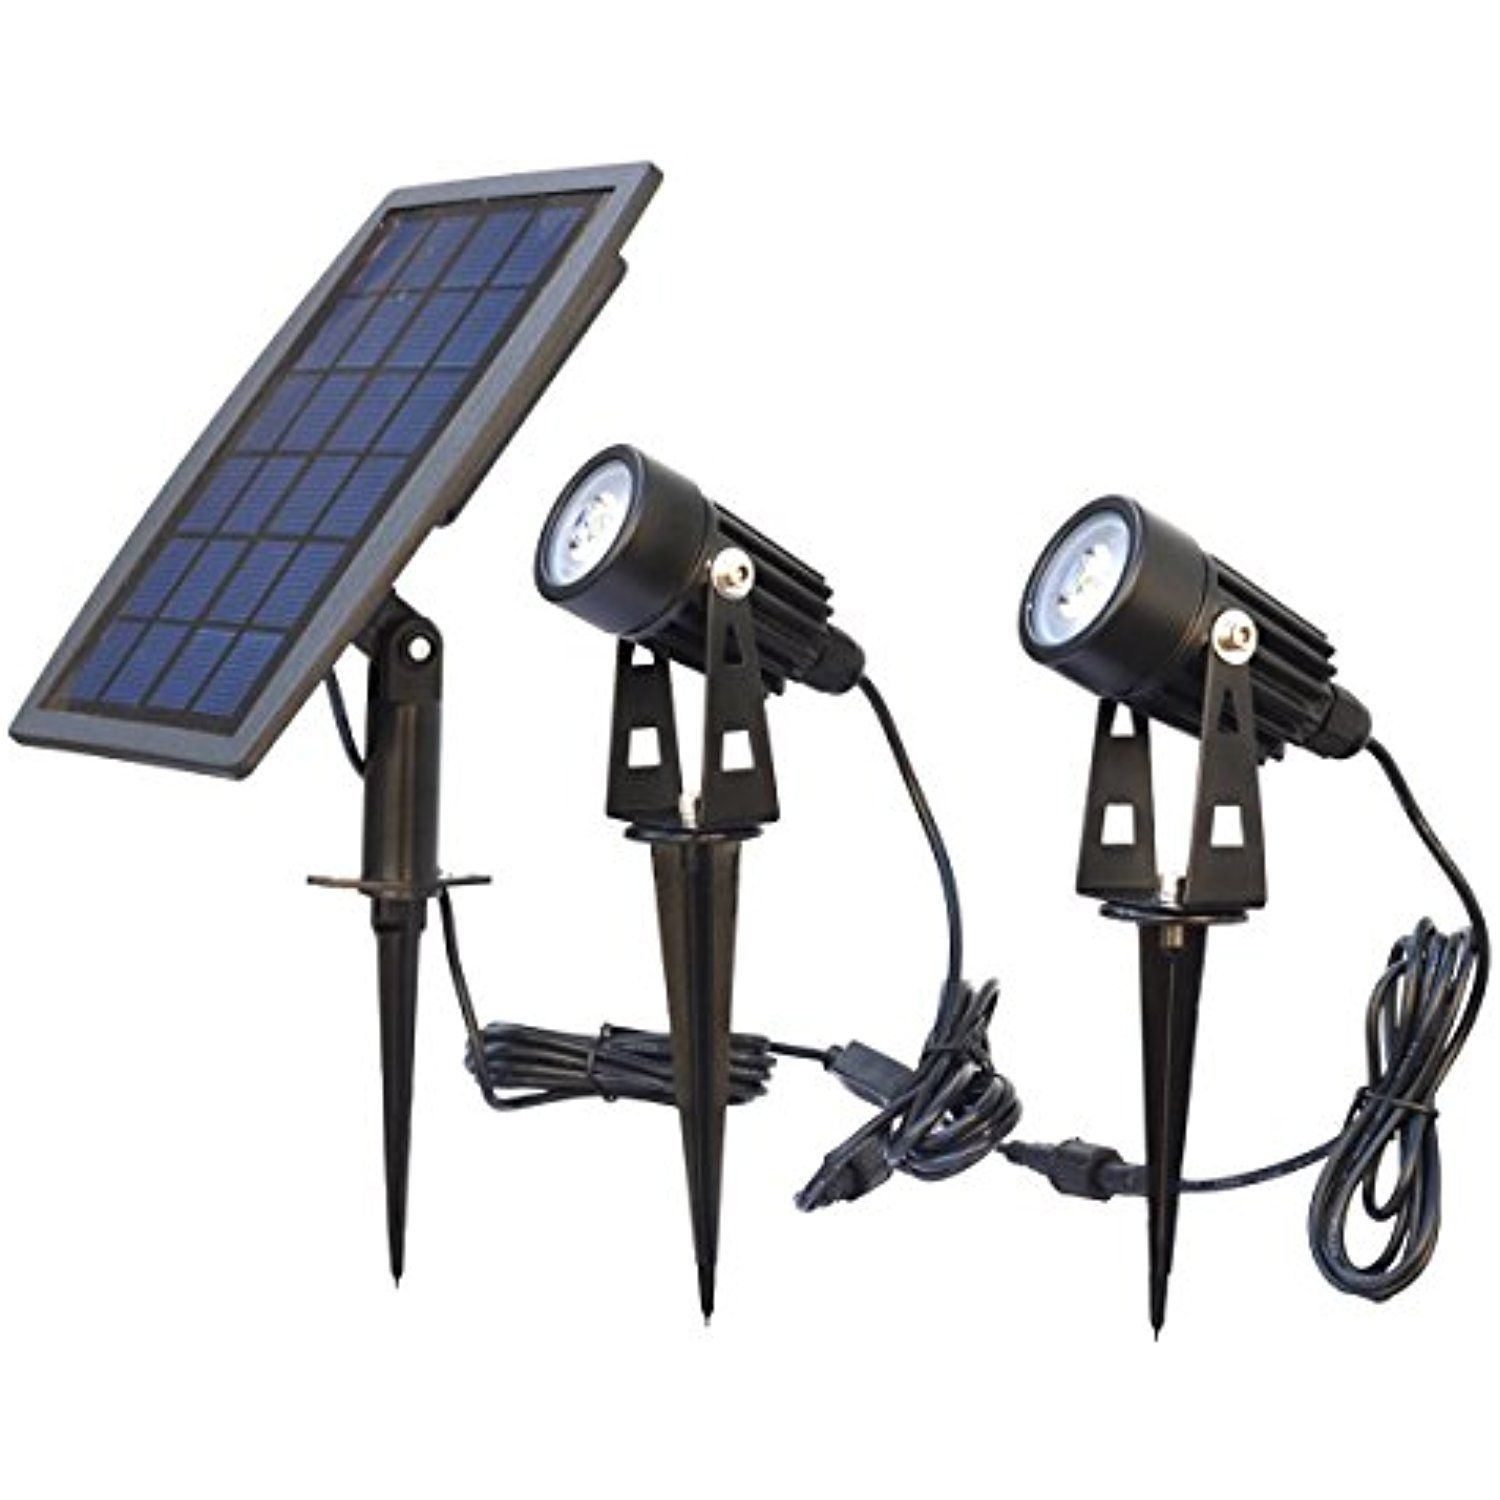 Solar Spotlights Waterproof Wall Sconces Security Light Solar Panel Powered